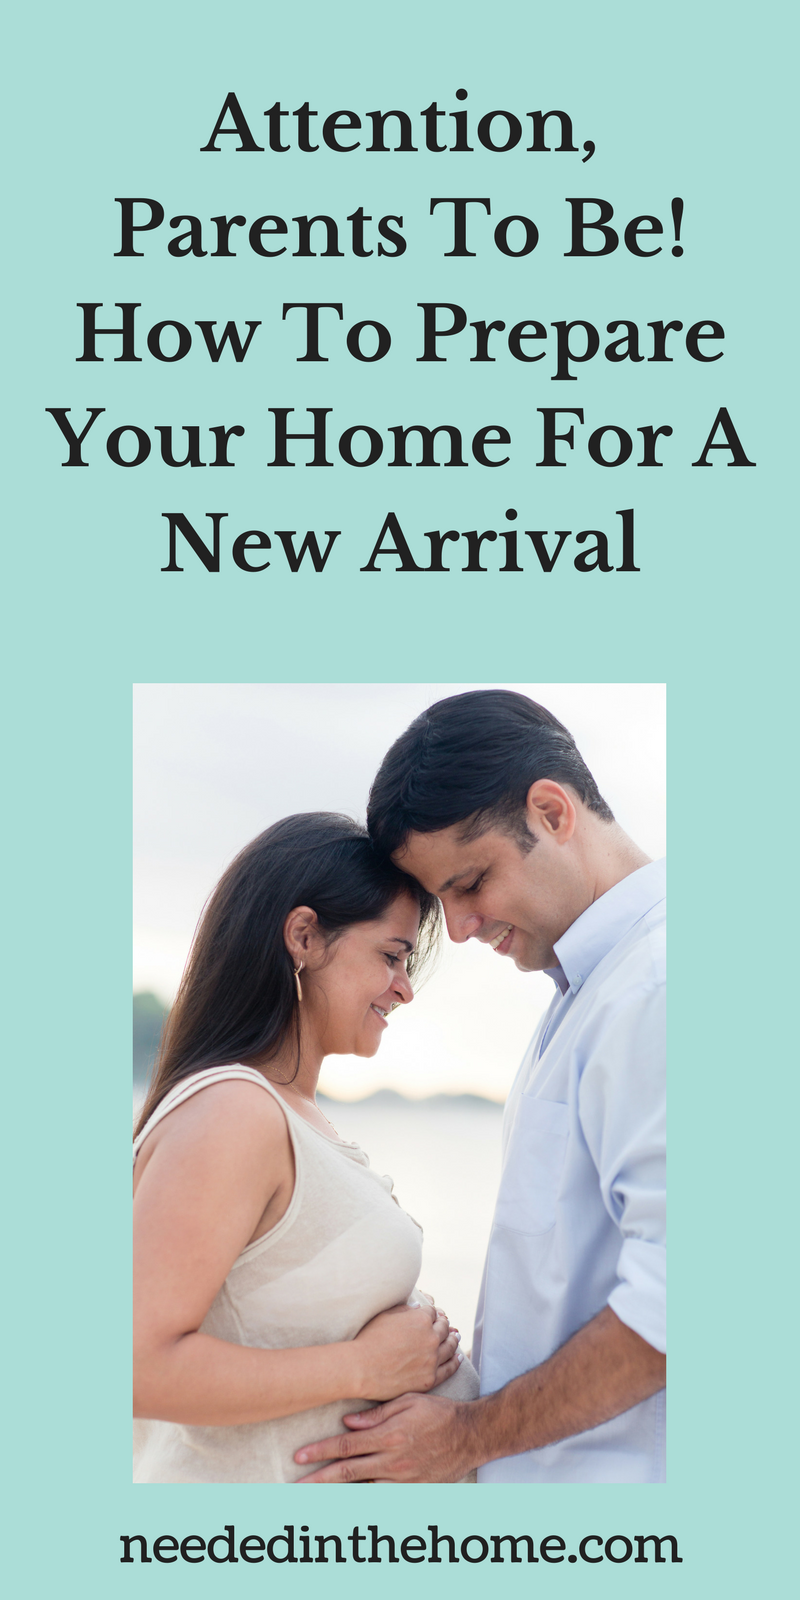 pregnant woman and man Attention, Parents To Be! How To Prepare Your Home For A New Arrival neededinthehome.com